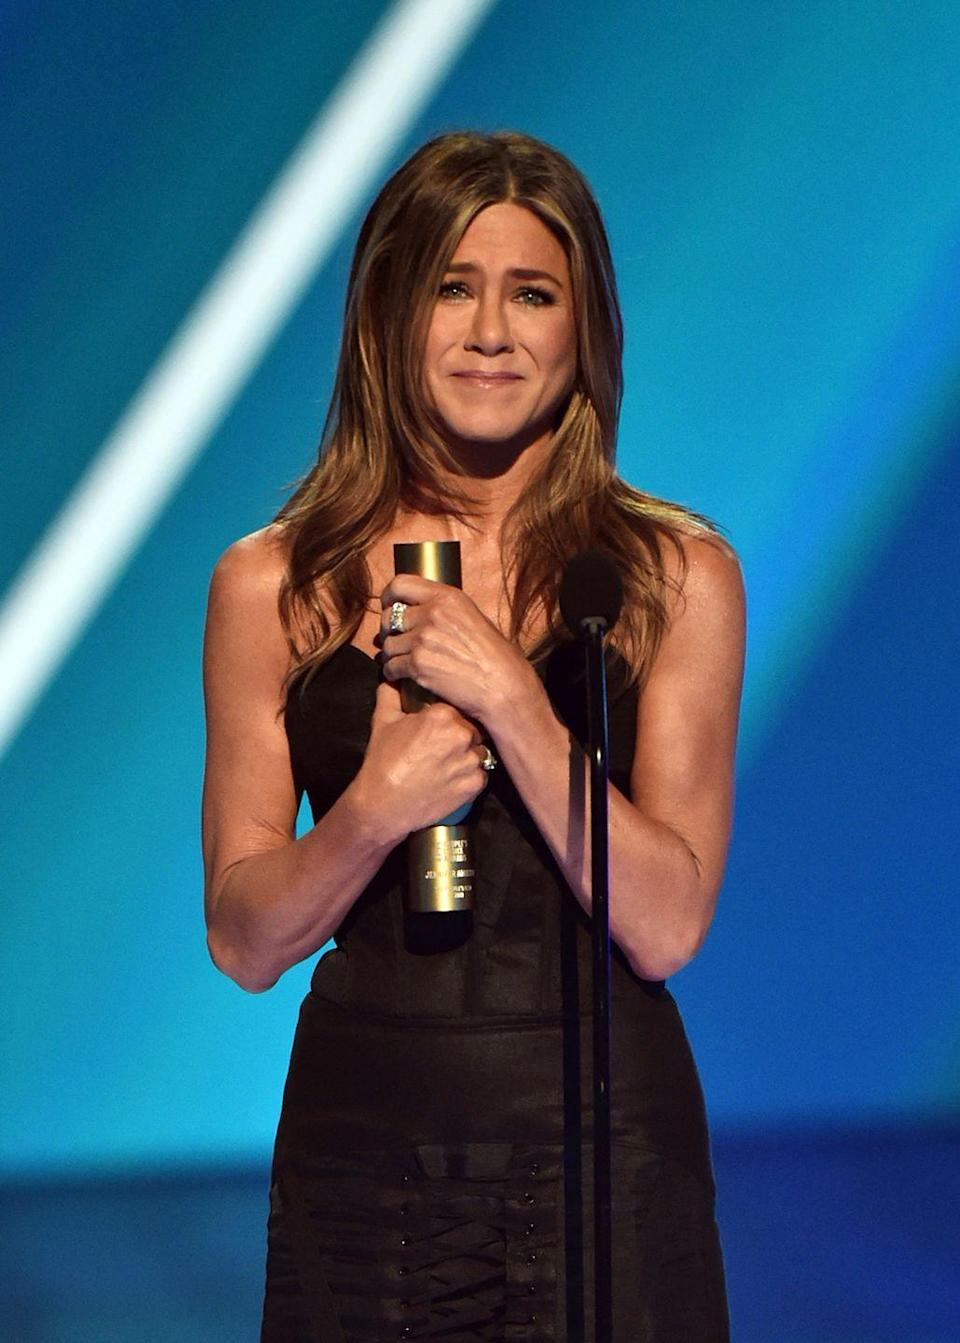 "<p>To challenge her, Jennifer's trainer Leyon Azubuike told <em><a href=""https://www.womenshealthmag.com/fitness/a26280079/jennifer-aniston-birthday-workout/"" rel=""nofollow noopener"" target=""_blank"" data-ylk=""slk:Women's Health"" class=""link rapid-noclick-resp"">Women's Health</a></em> that he has Jen do plank flow, where she starts in a standard plank, then moves to a side plank, then moves to plank with shoulder taps, and so forth.</p>"